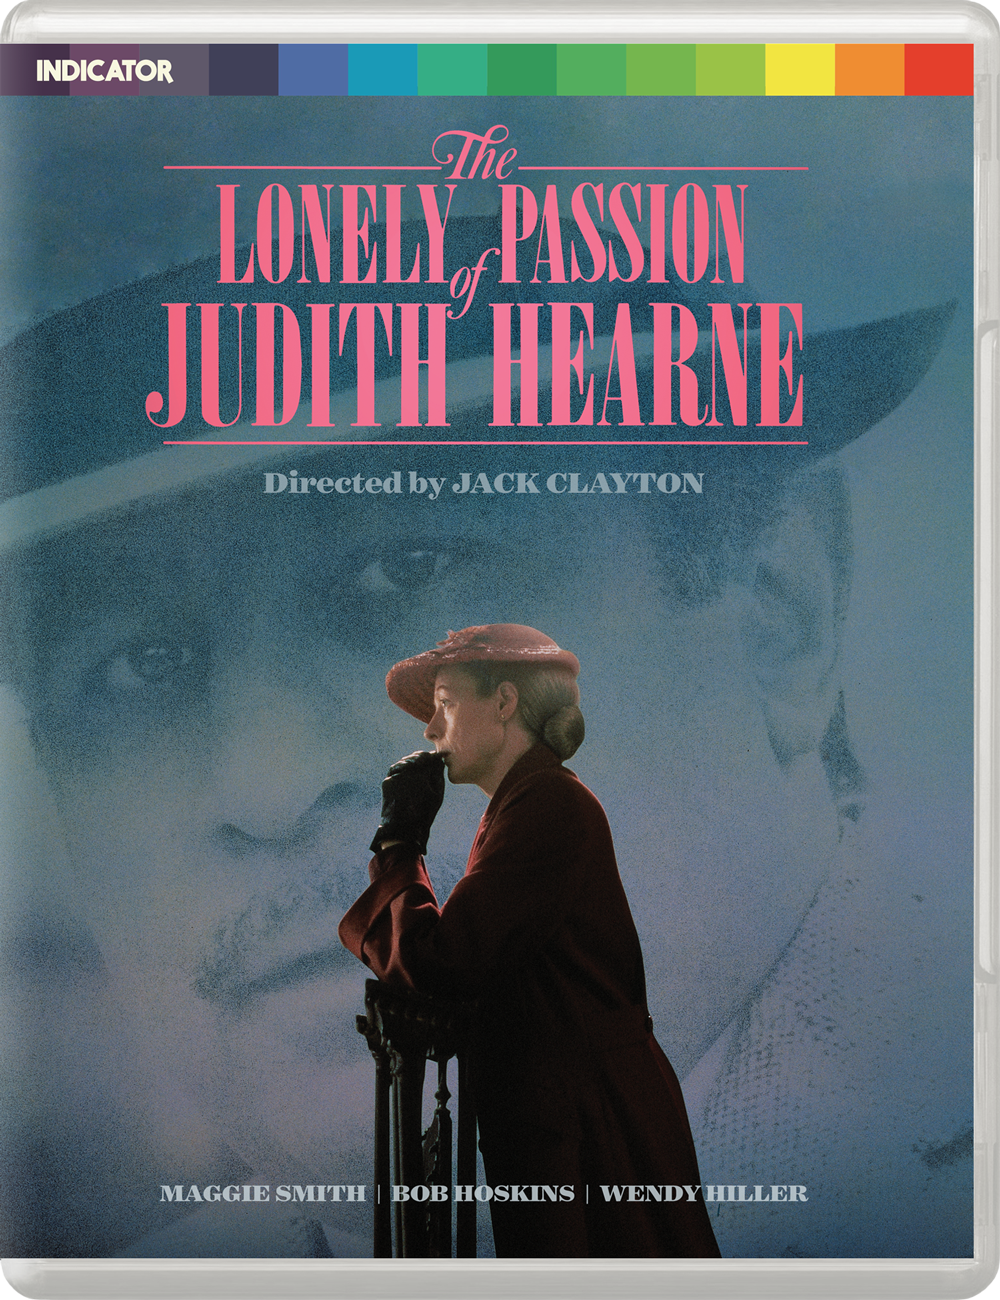 THE LONELY PASSION OF JUDITH HEARNE - LE